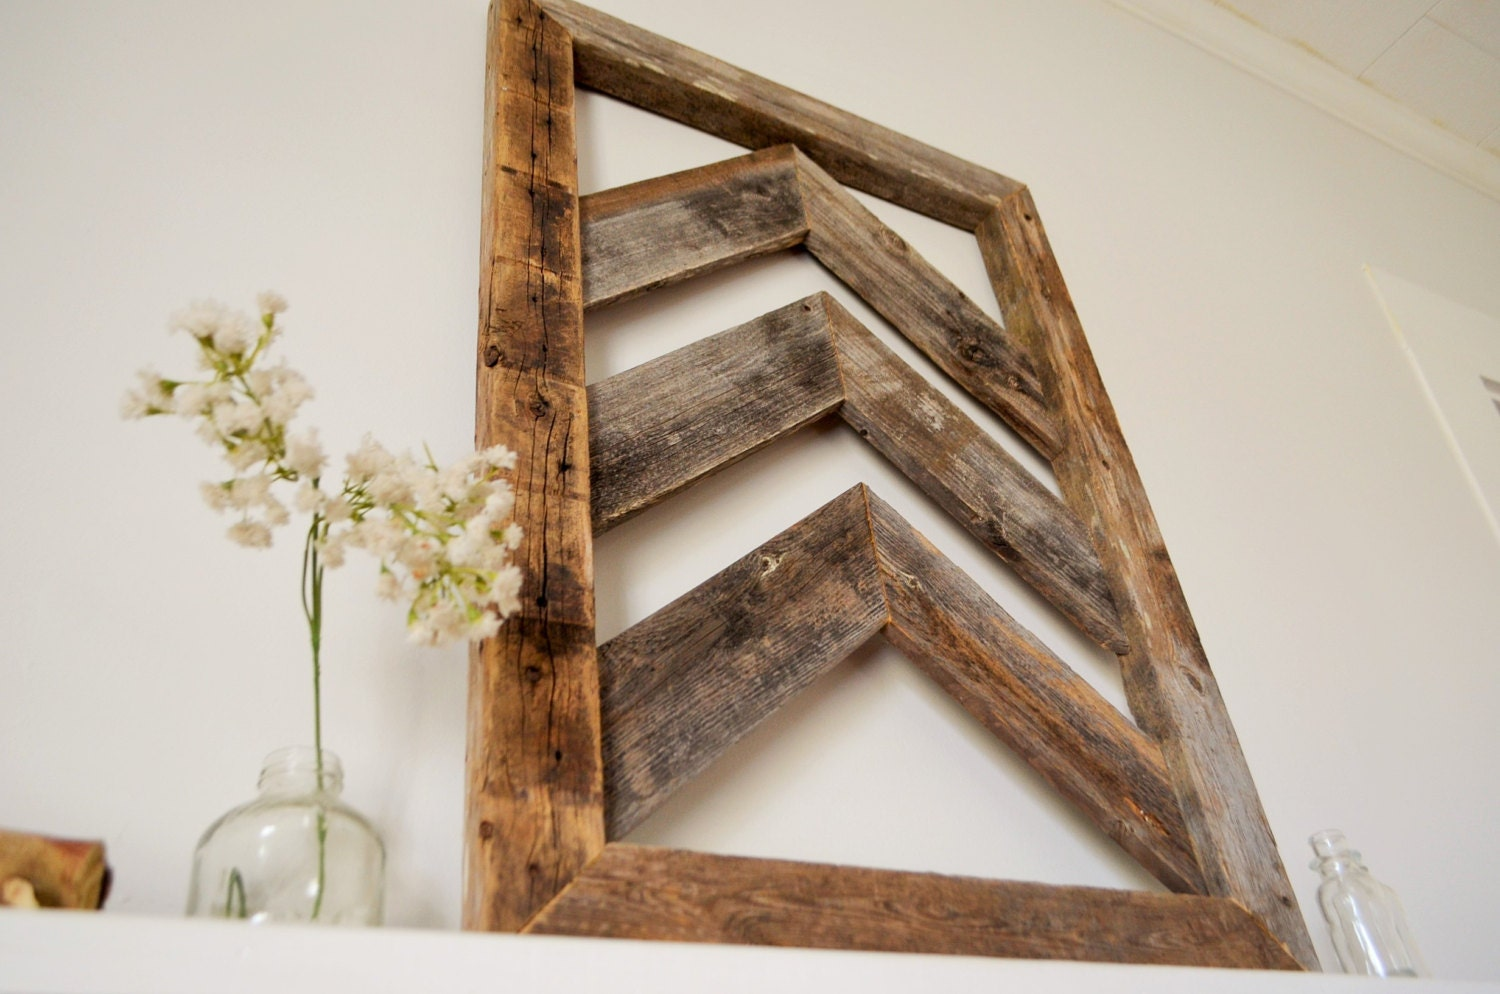 Sale Reclaimed Chevron Wood Wall Art Barn Wood Home Decor: reclaimed wood wall art for sale